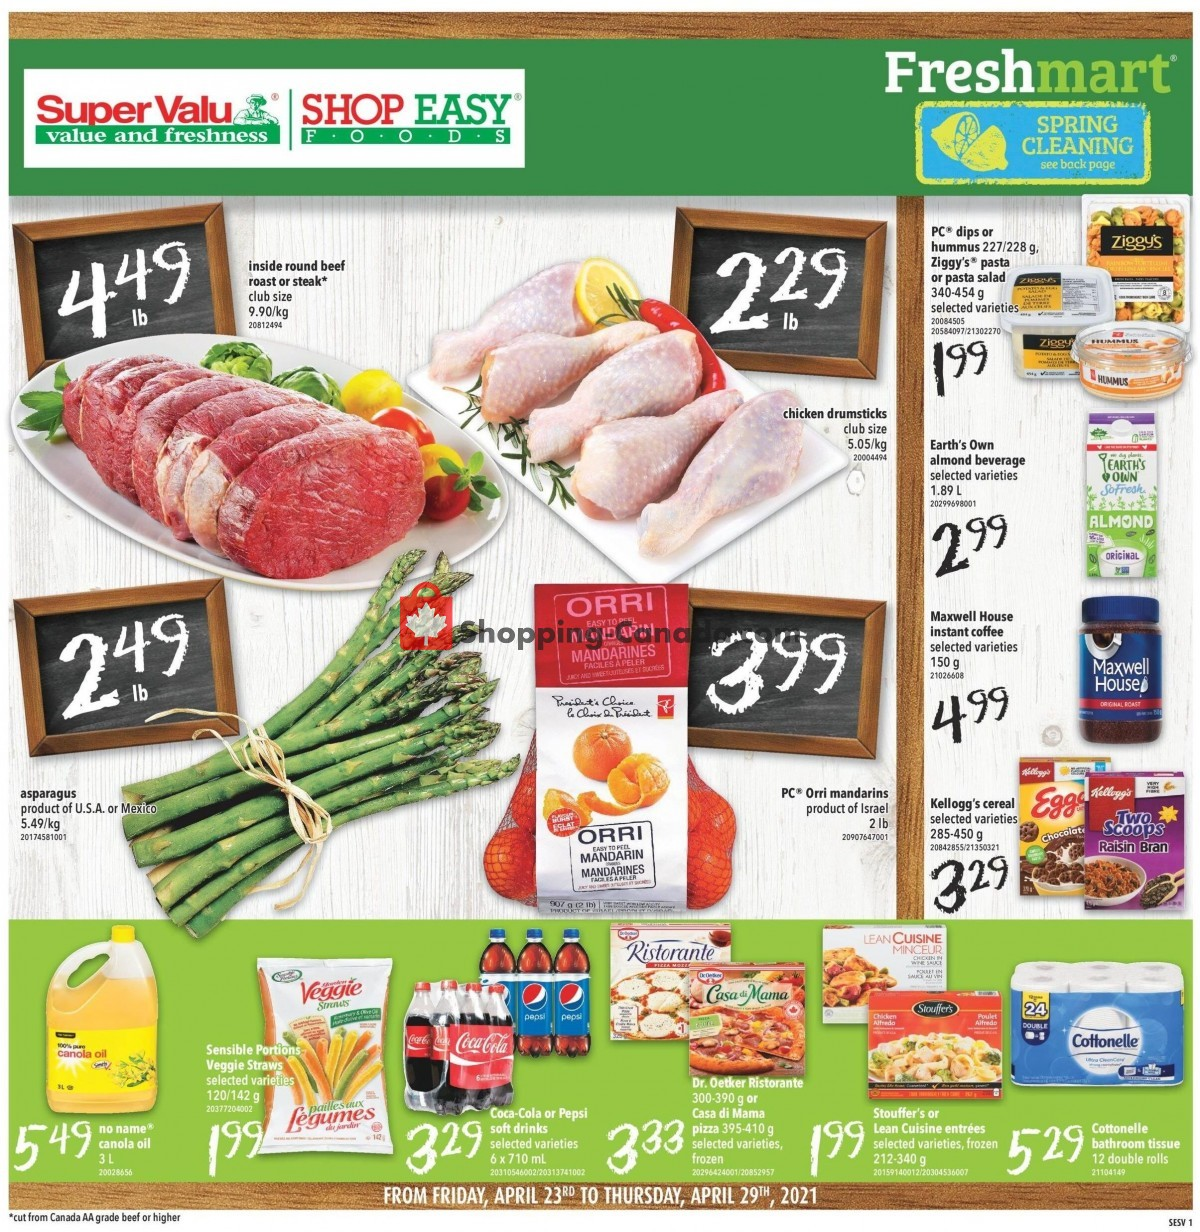 Flyer Shop Easy Foods & SuperValu Canada - from Friday April 23, 2021 to Thursday April 29, 2021